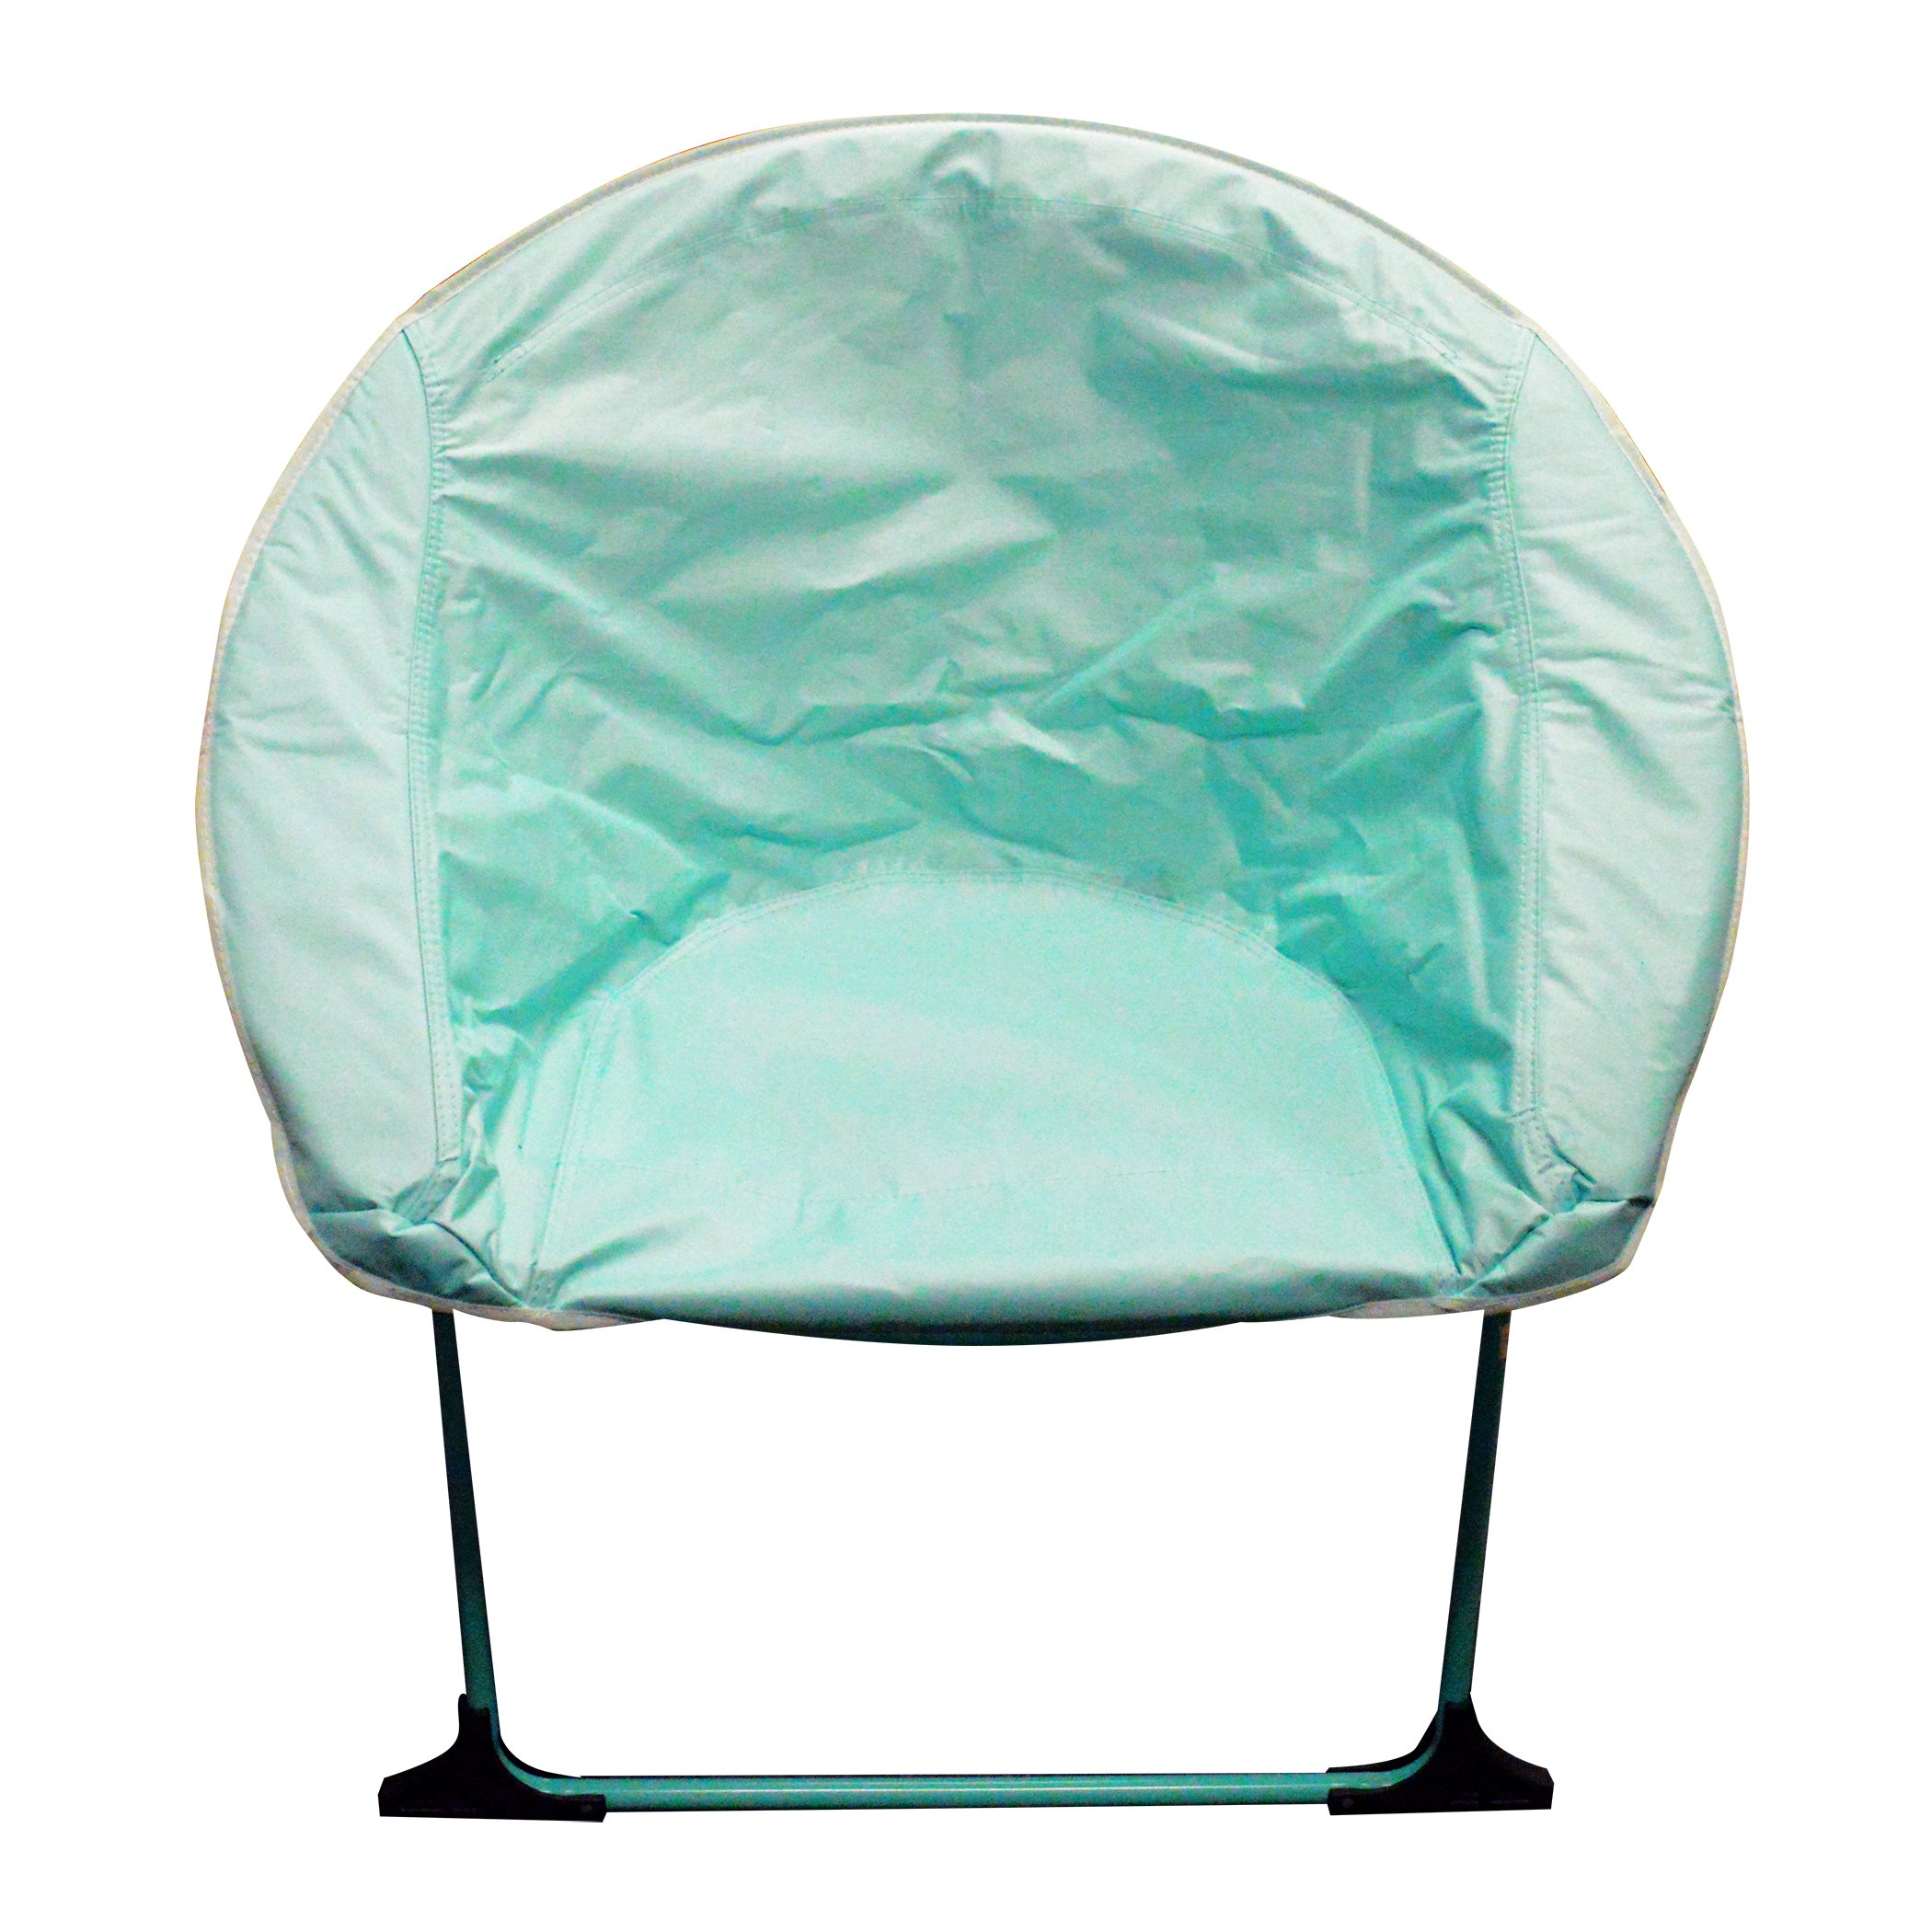 Impact Canopy Luna Lightweight Portable Folding Dorm Chair, Turquoise by Impact Canopy